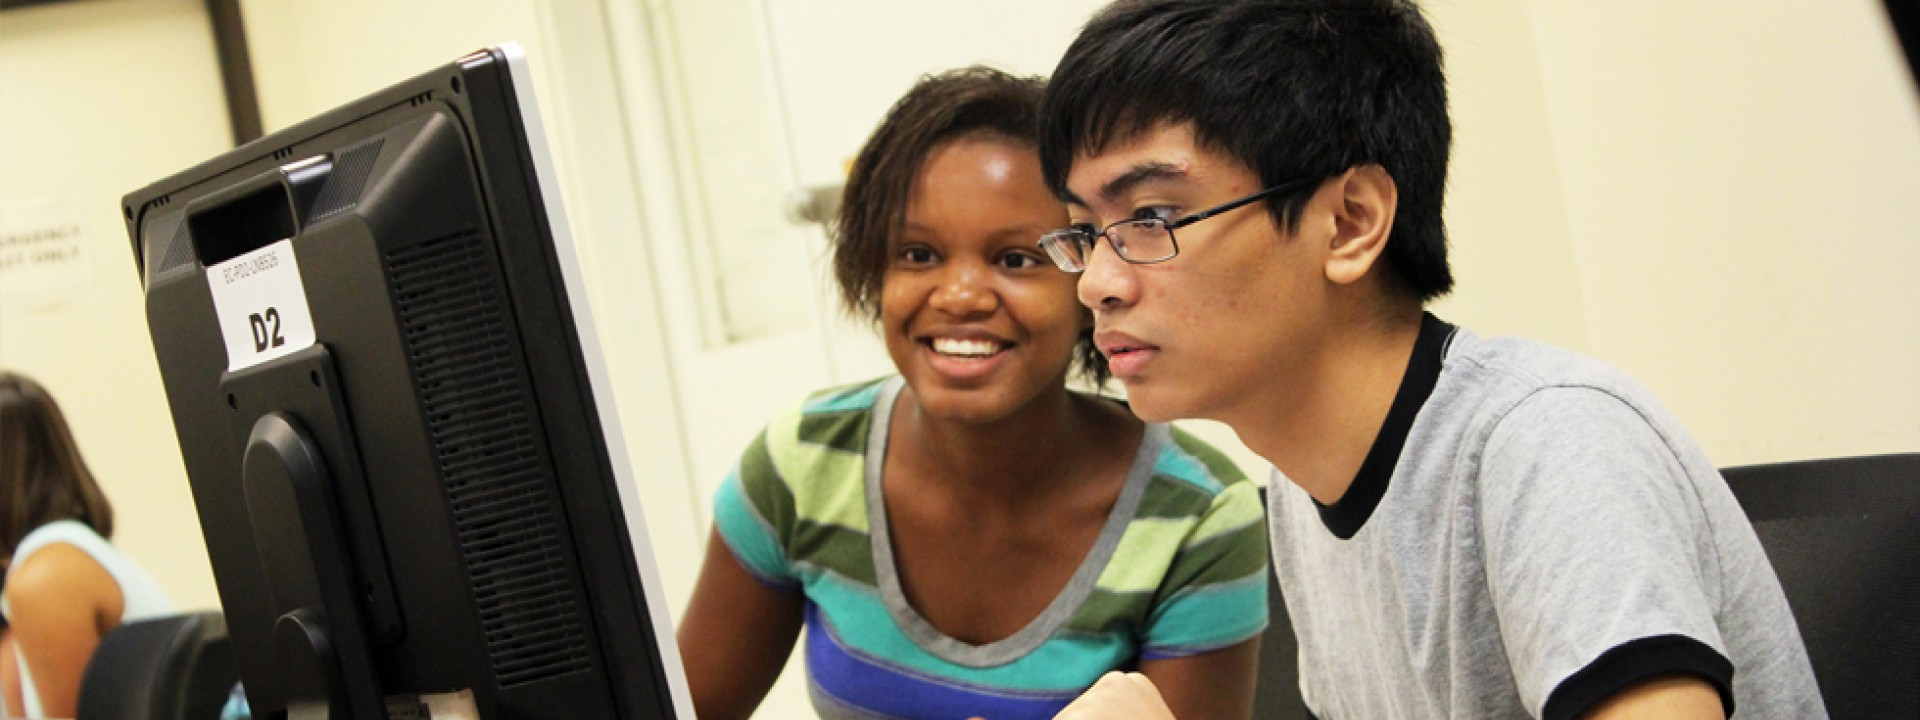 Two Honors College students facing a computer screen intently.